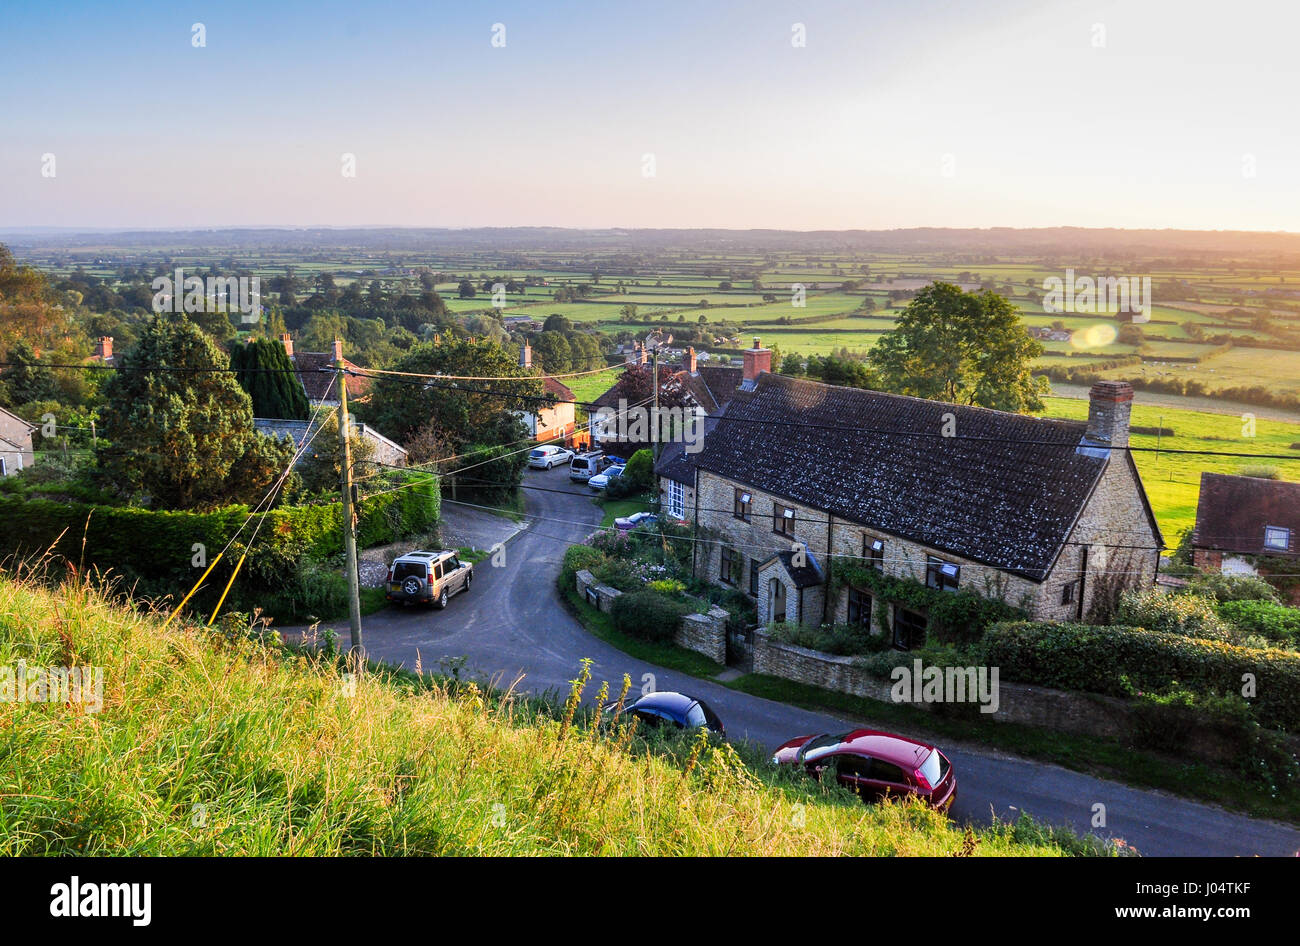 Tradditional English stone collages in the South Somerset village of Cucklington, set amongst rolling hills and - Stock Image